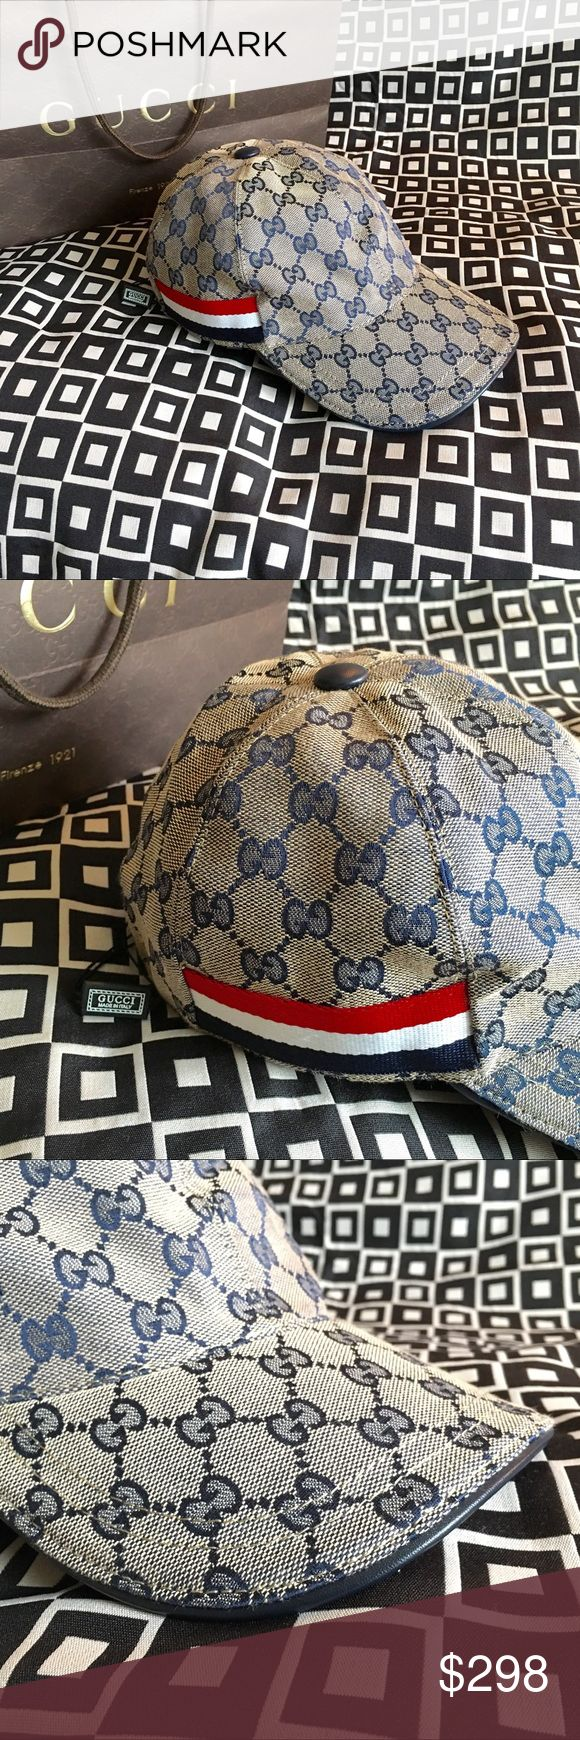 🎉🎊✨GUCCI GG CANVAS WEB HAT!!!✨🎊🎉 Gucci GG Canvas Baseball Cap!!!  Unisex....For Man or Woman!!!  Cotton lining!!!  Adjustable hook-and-loop closure!!!  Size - M!!!  HIDE DETAILS Made in Italy!!!                   Ignore: guccissma leather monogram web tiger bee embossed panther wool cable knit blooms supreme print angry cat ufo dragon Gucci Accessories Hats